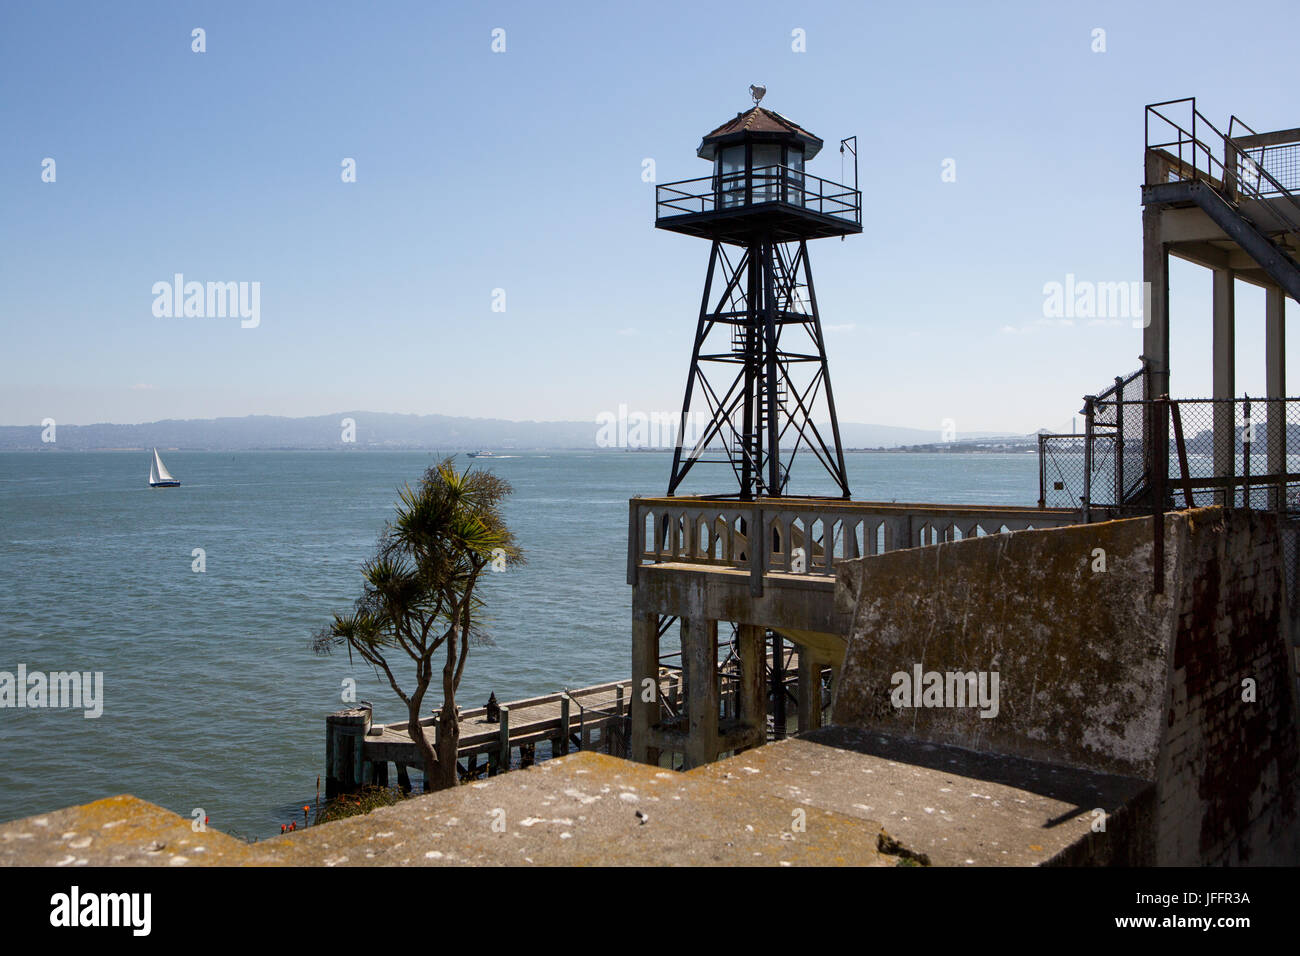 A watchtower on Alcatraz Island, and a scenic view of the water and a sailboat off shore. - Stock Image